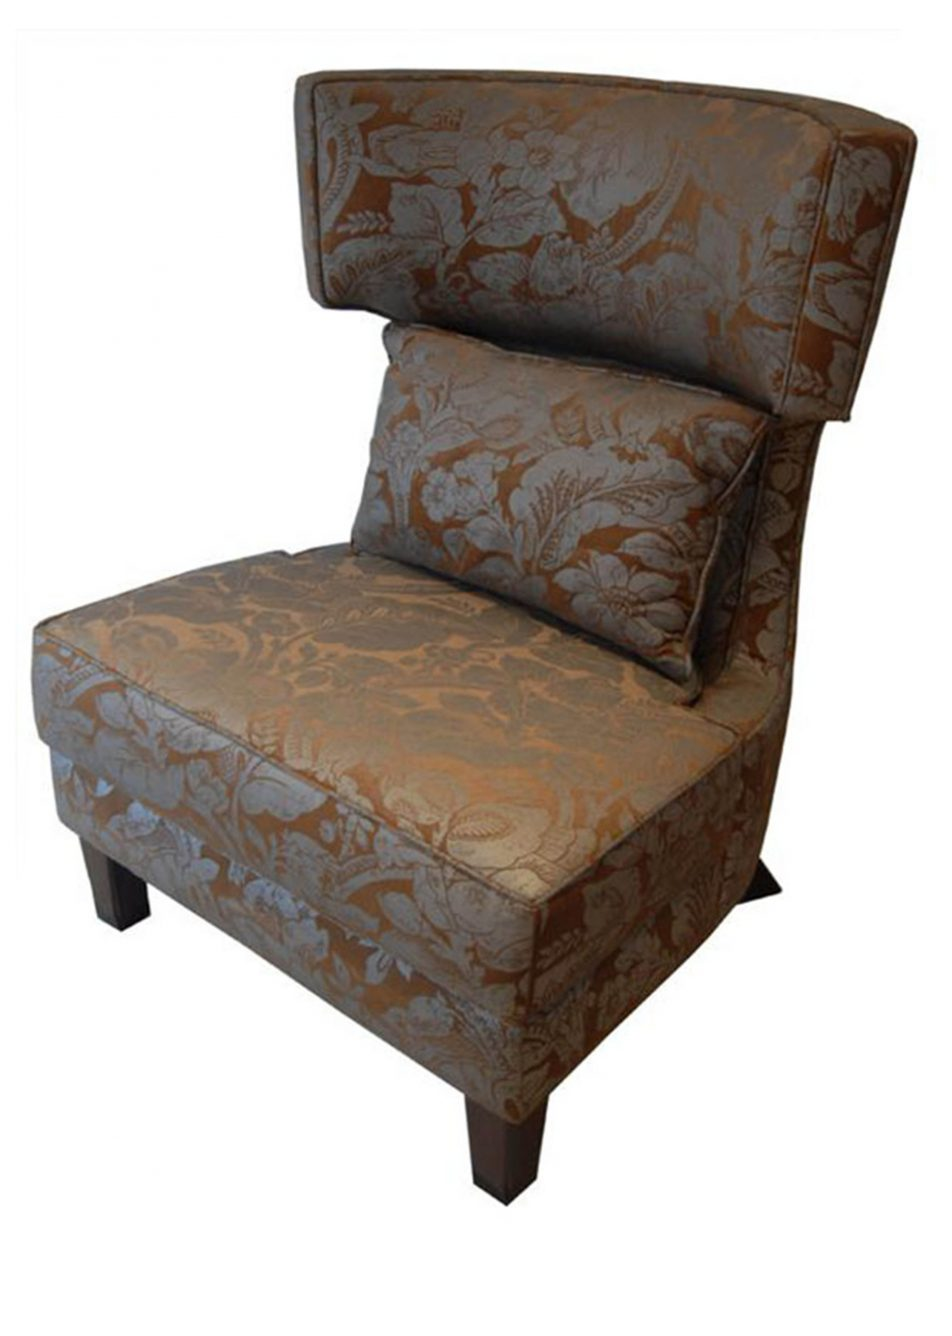 House Haven Dining Chairs 0006 Sawbourne Chair